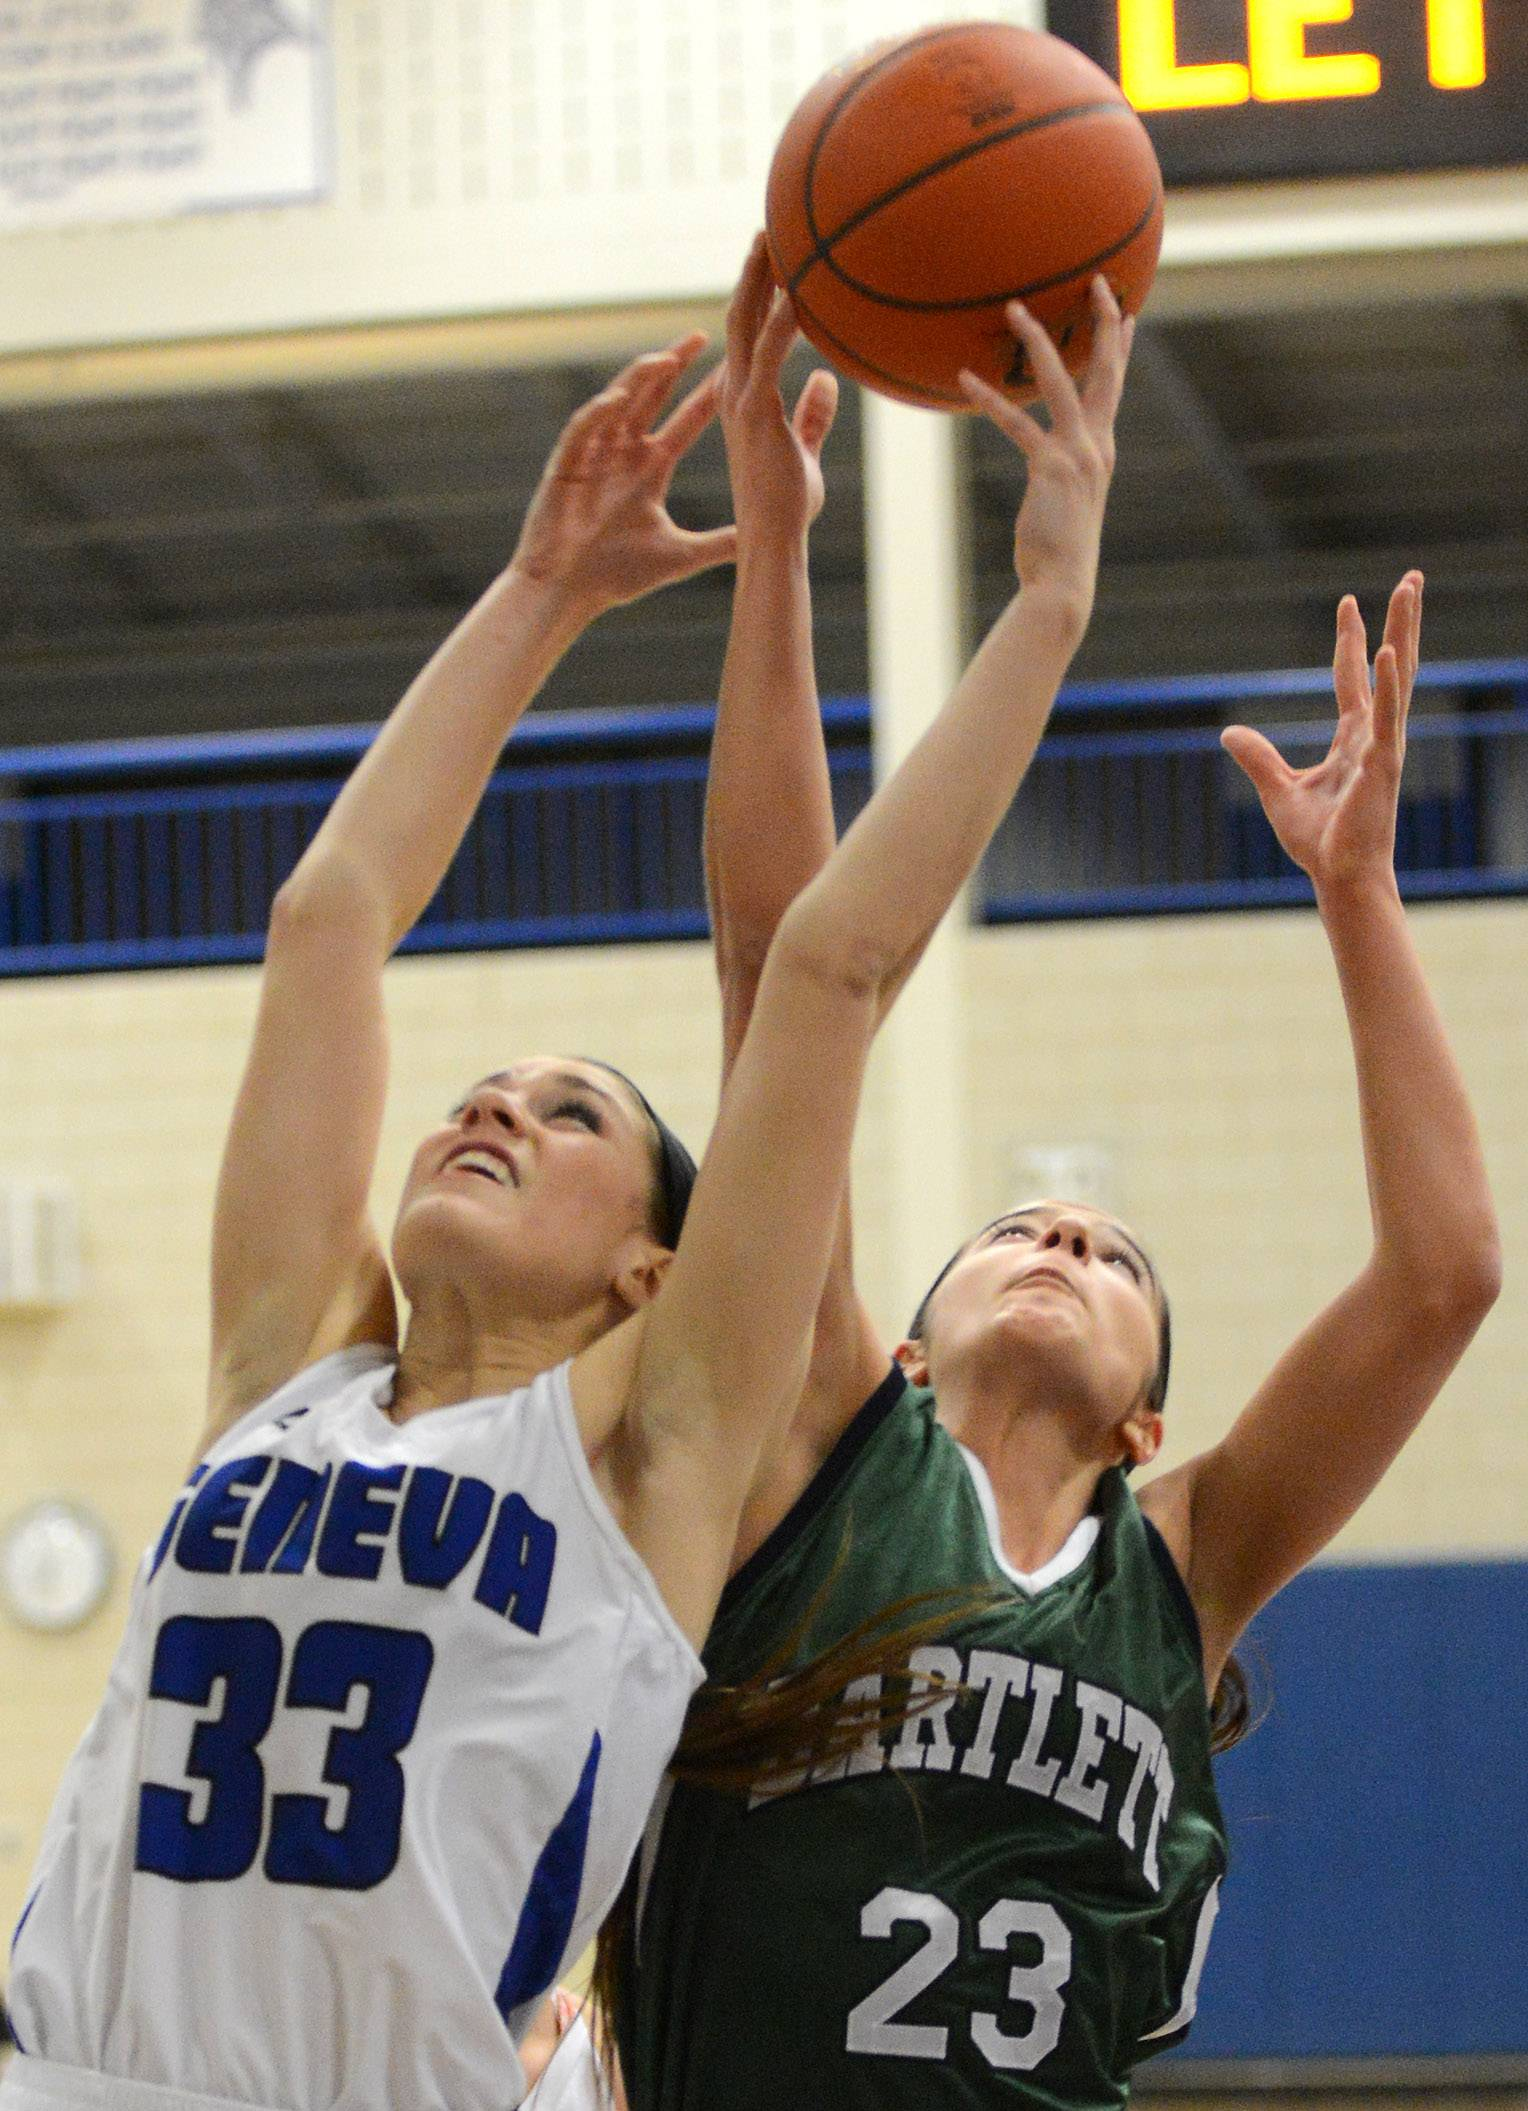 Geneva's Madeline Dunn (33) battles Bartlett for a rebound Thursday. The Vikings will be trying to win their sixth straight regional championship next week.